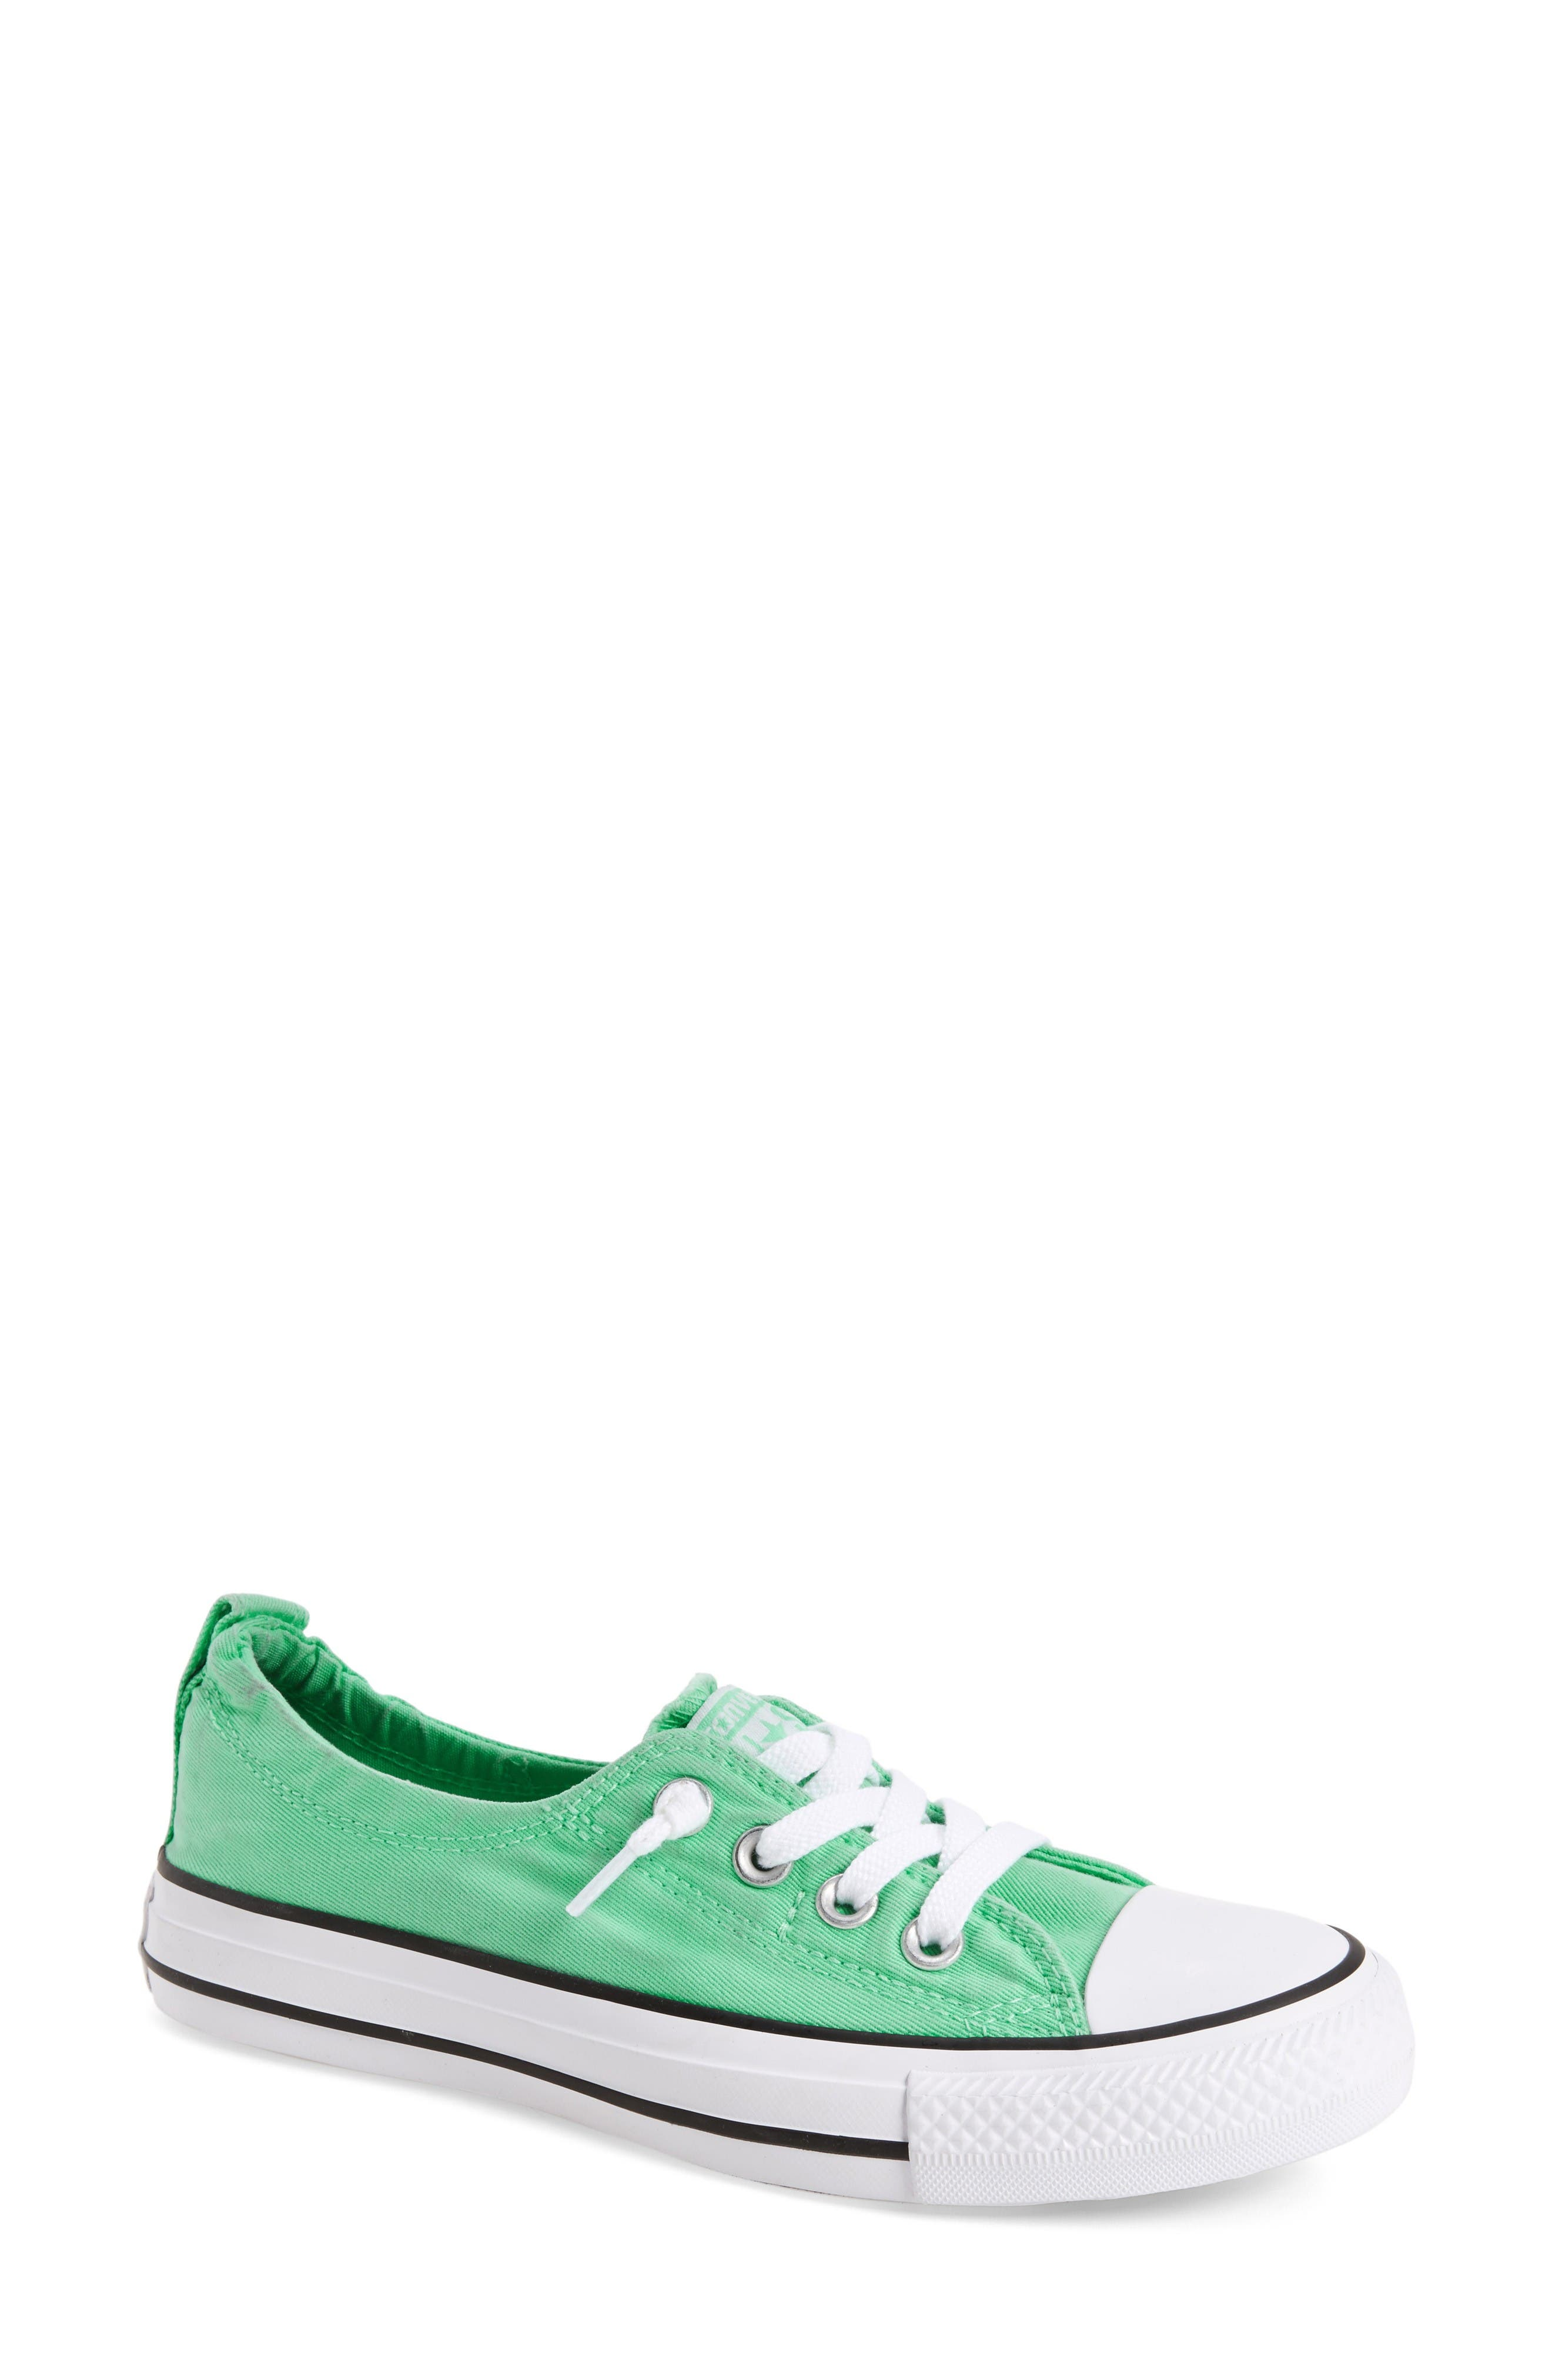 Alternate Image 1 Selected - Converse Chuck Taylor® All Star® 'Shoreline' Low Top Sneaker (Women) (Regular Retail Price: $59.95)